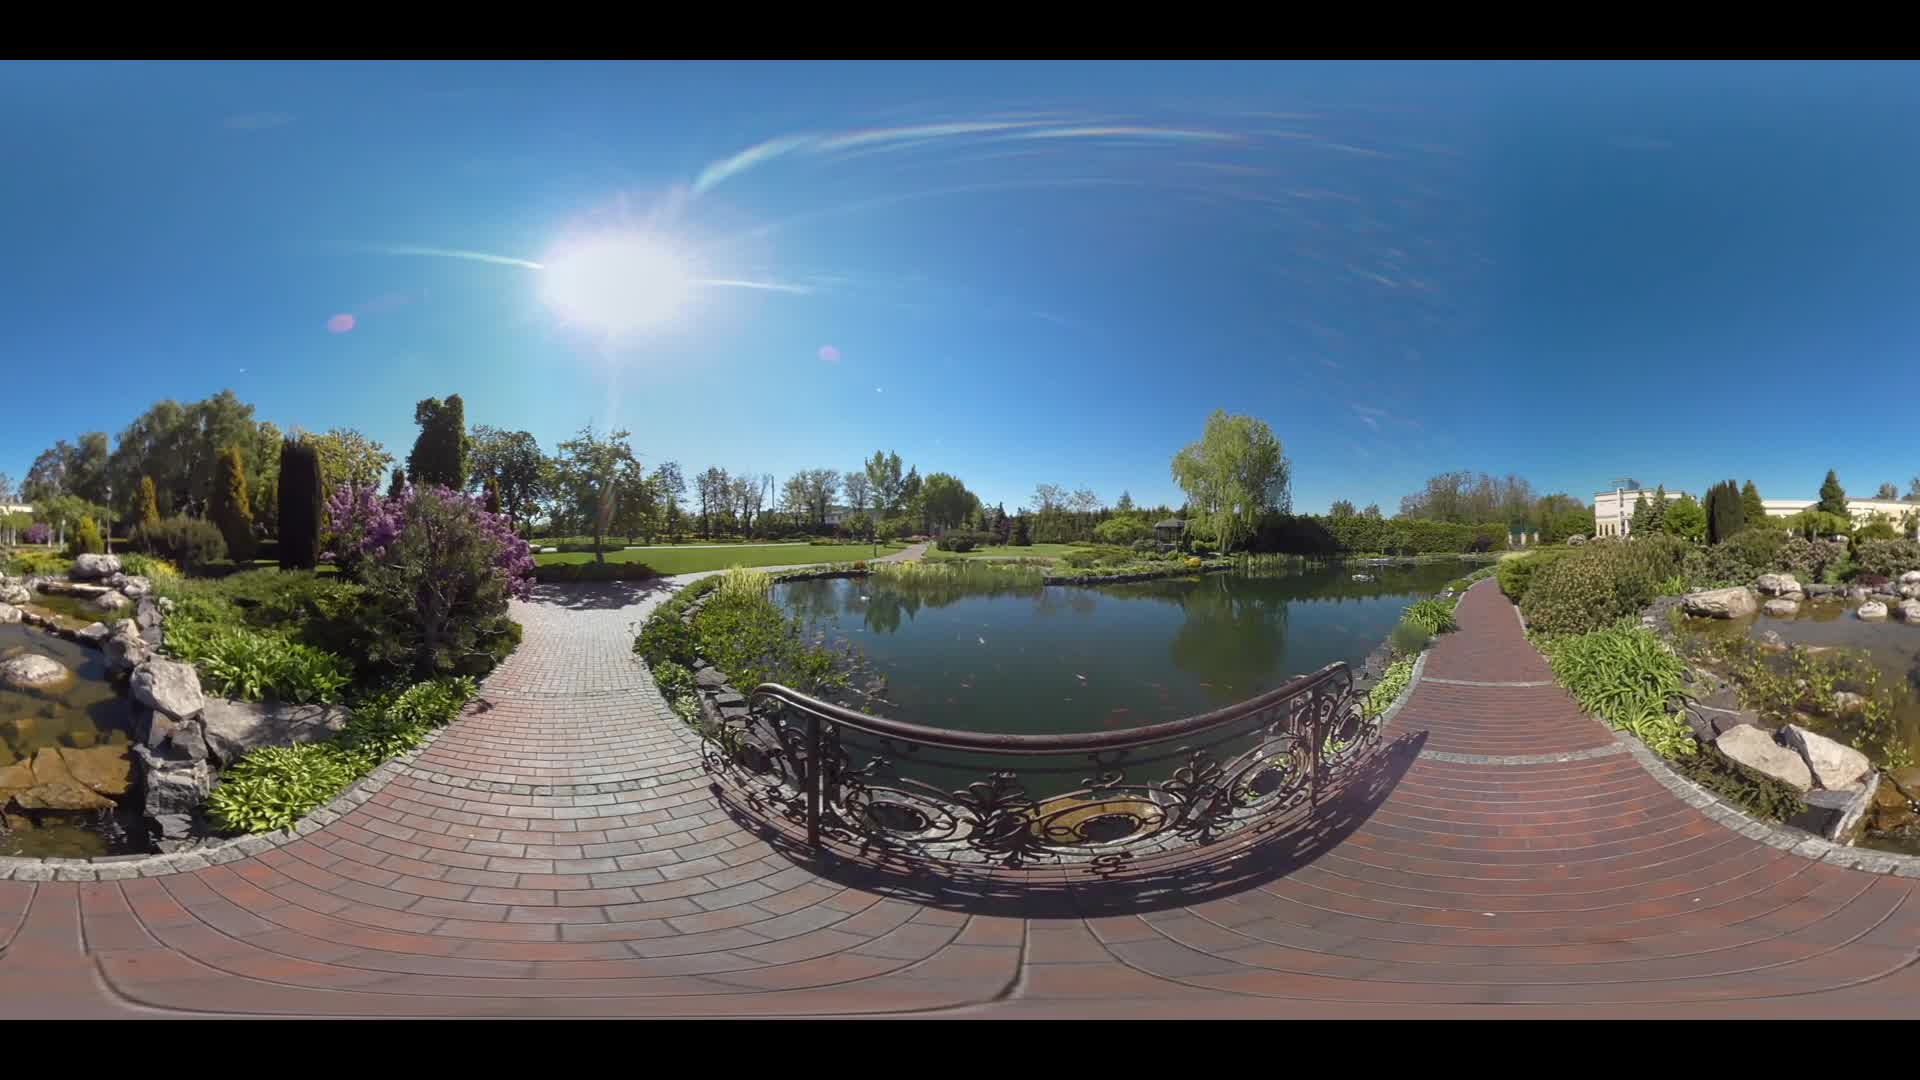 360 degree view of landscape lake in summer park. Panoramic view summer park lake. 360 degrees panorama of garden lake summer. Beautiful nature in city park